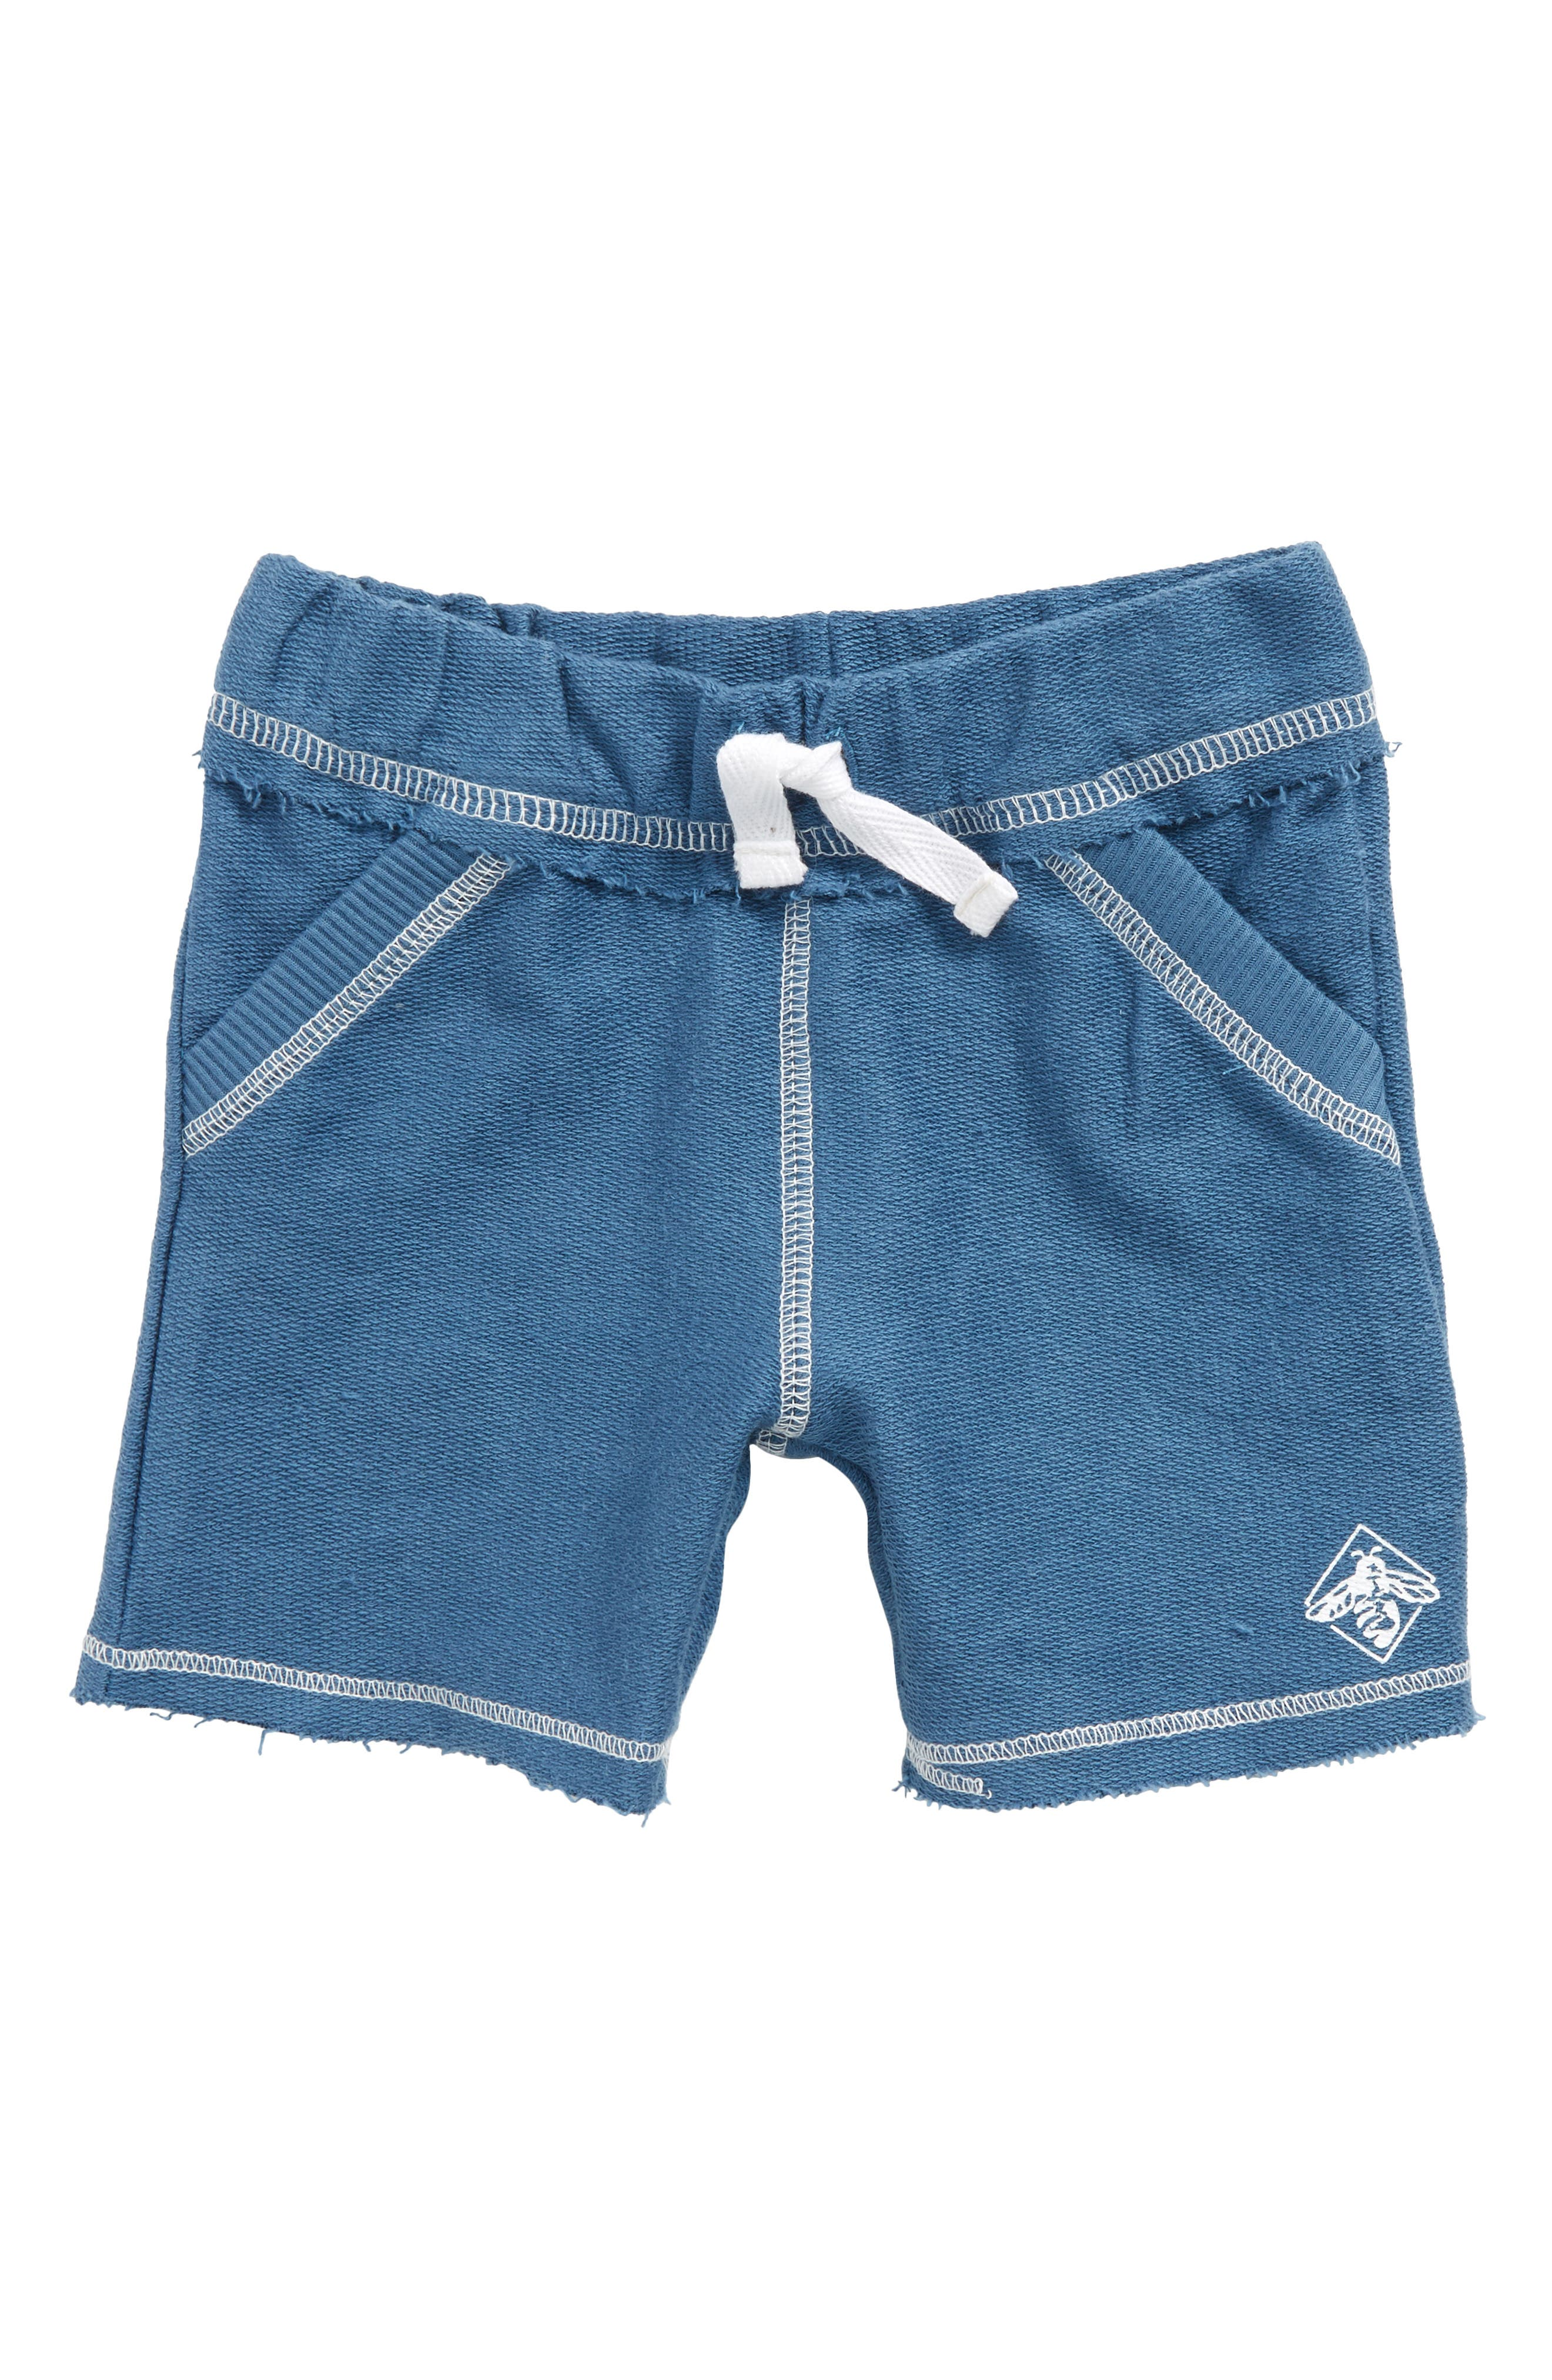 Organic Cotton French Terry Shorts,                             Main thumbnail 1, color,                             Blue Star